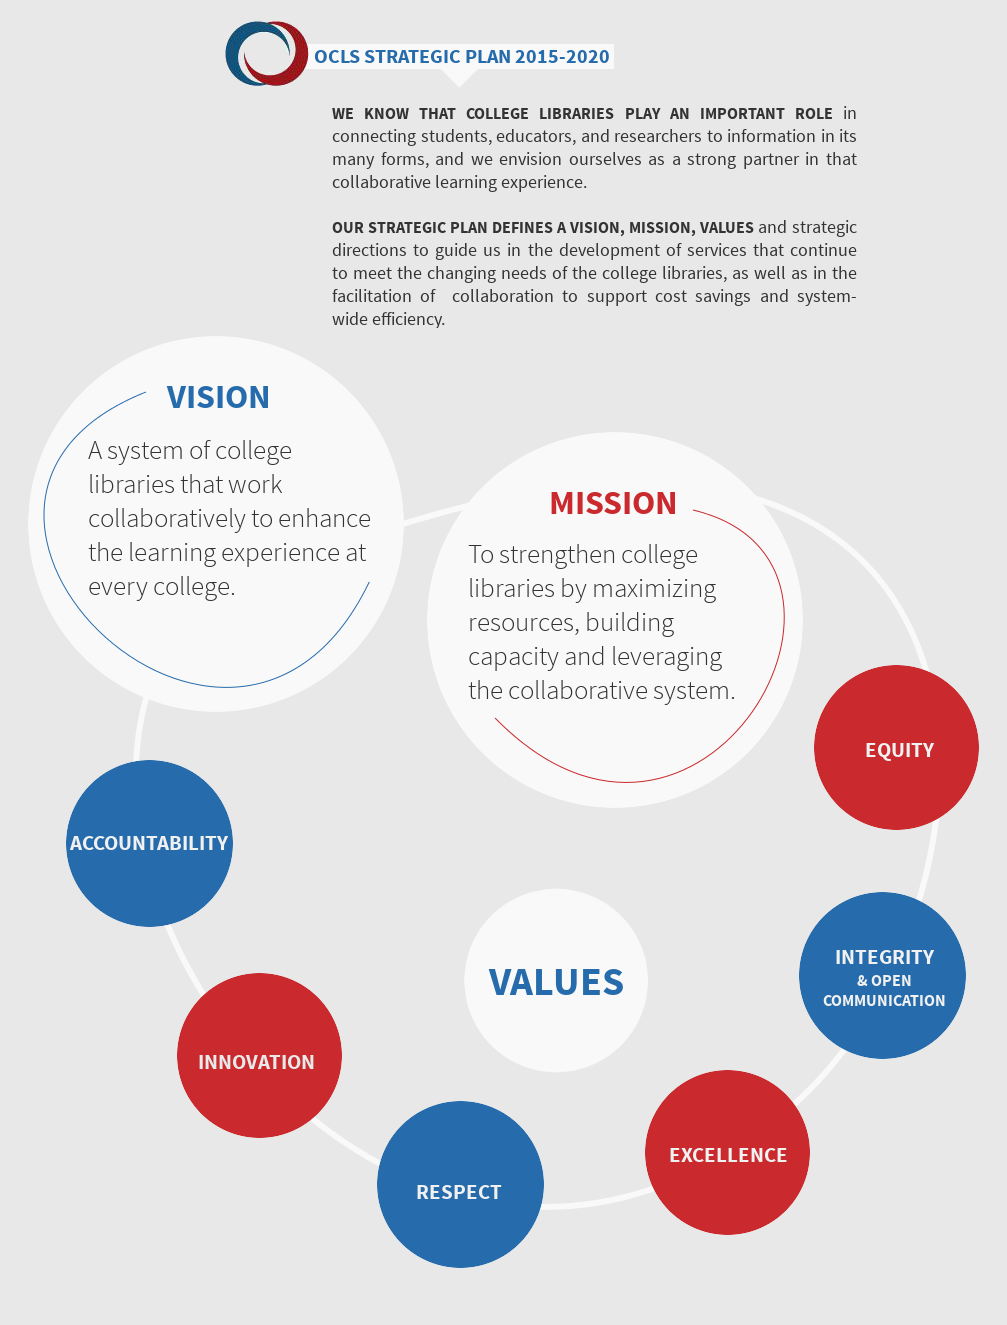 Infographic. Vision - A system of college libraries that work collaboratively to enhance the learning experience at every college. Mission - To strengthen college libraries by maximizing resources, building capacity and leveraging the collaborative system. Values - Equity, Integrity & Open Communication, Excellence, Respect, Innovation, Accountability.